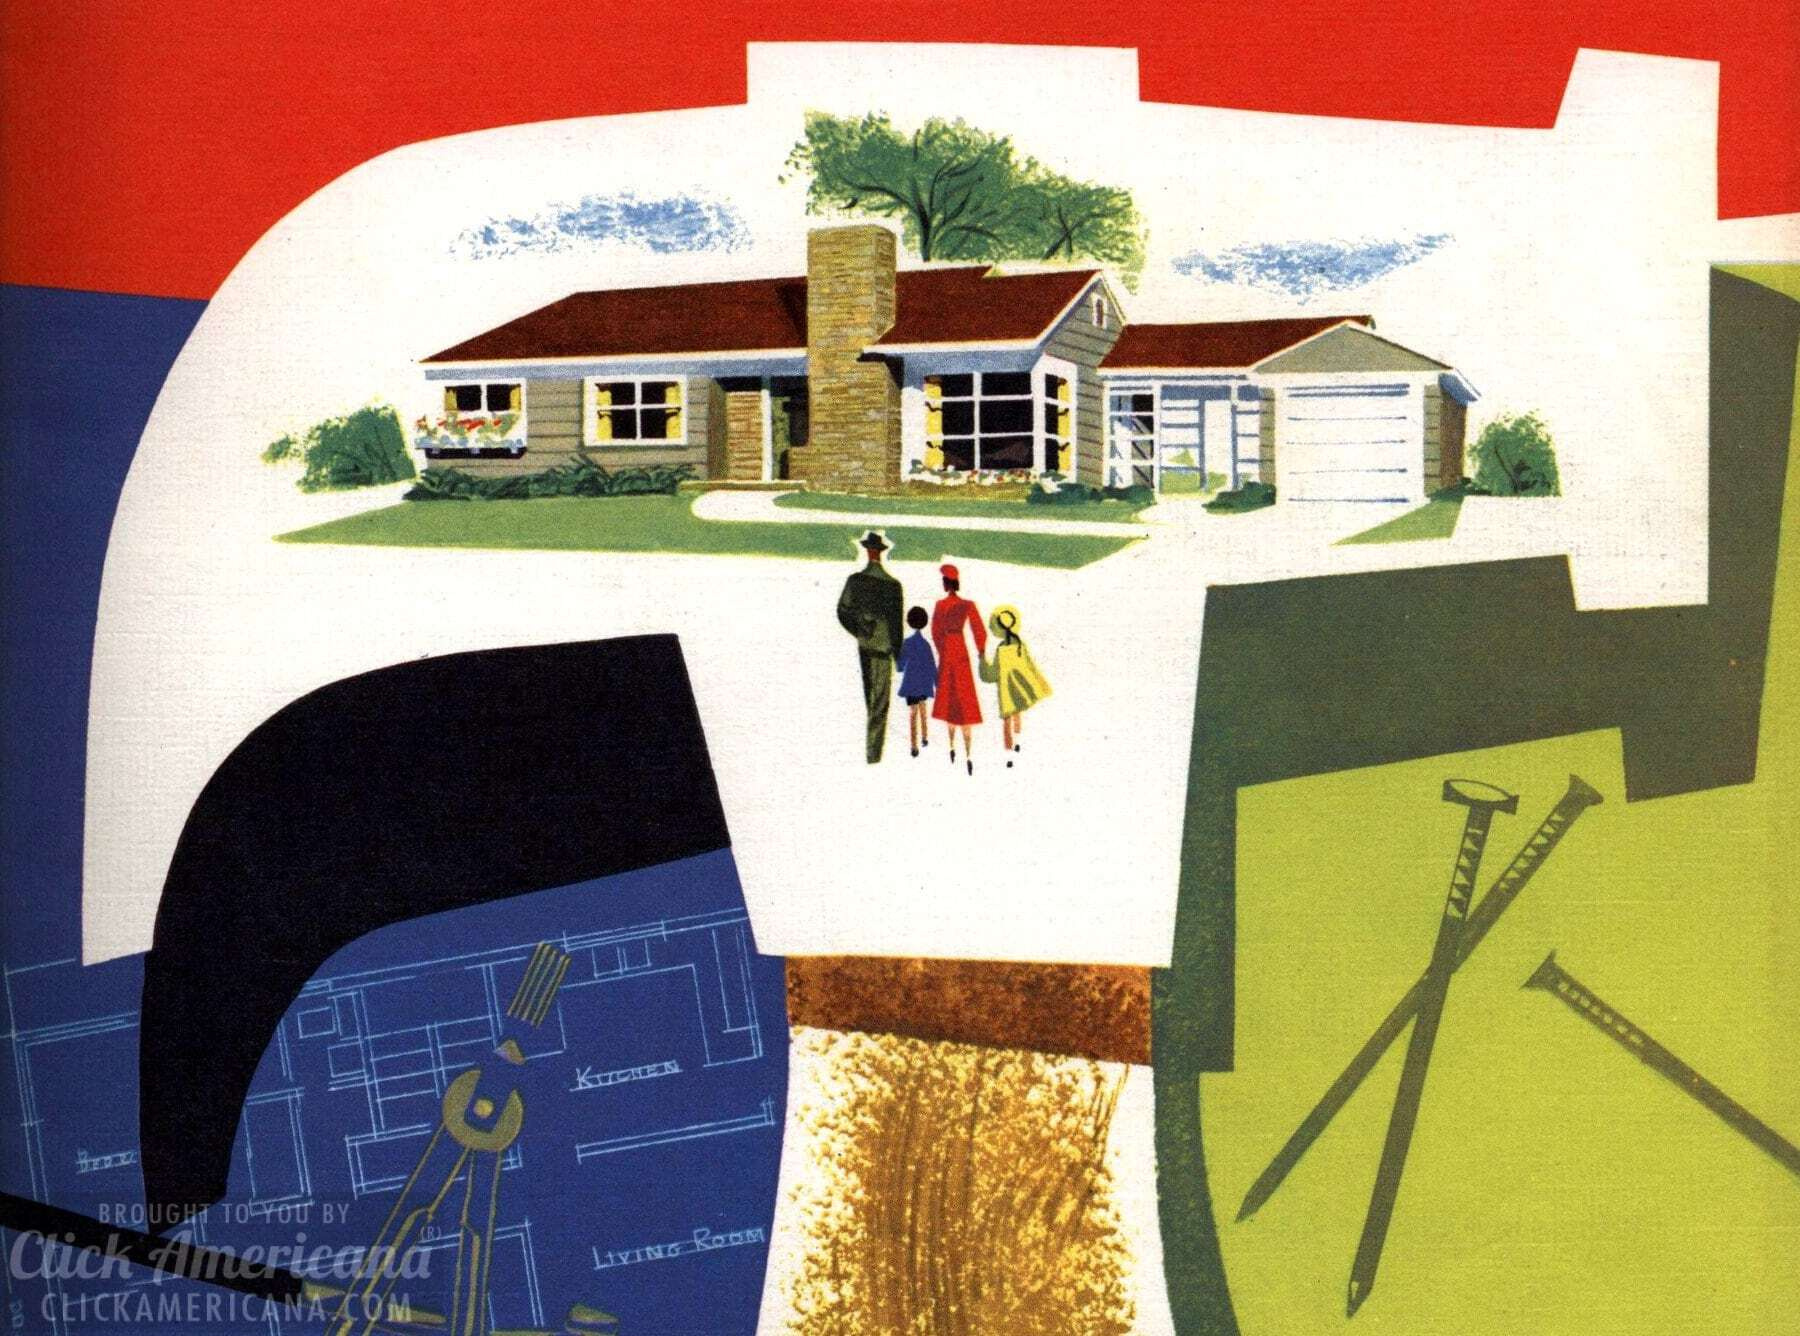 See 130 vintage '50s house plans used to build millions of ... Ice House Plans America on the selection america, ebola america, michael arroyo america, post war america, fireworks america, f60 america, because america, right-wing america, sarah palin america, police brutality america, ww2 propaganda america, ronald reagan america, isis america, japan america, ms senior america, pyper america, ice hotels in america, civilization 5 america, polandball america, postcode america,